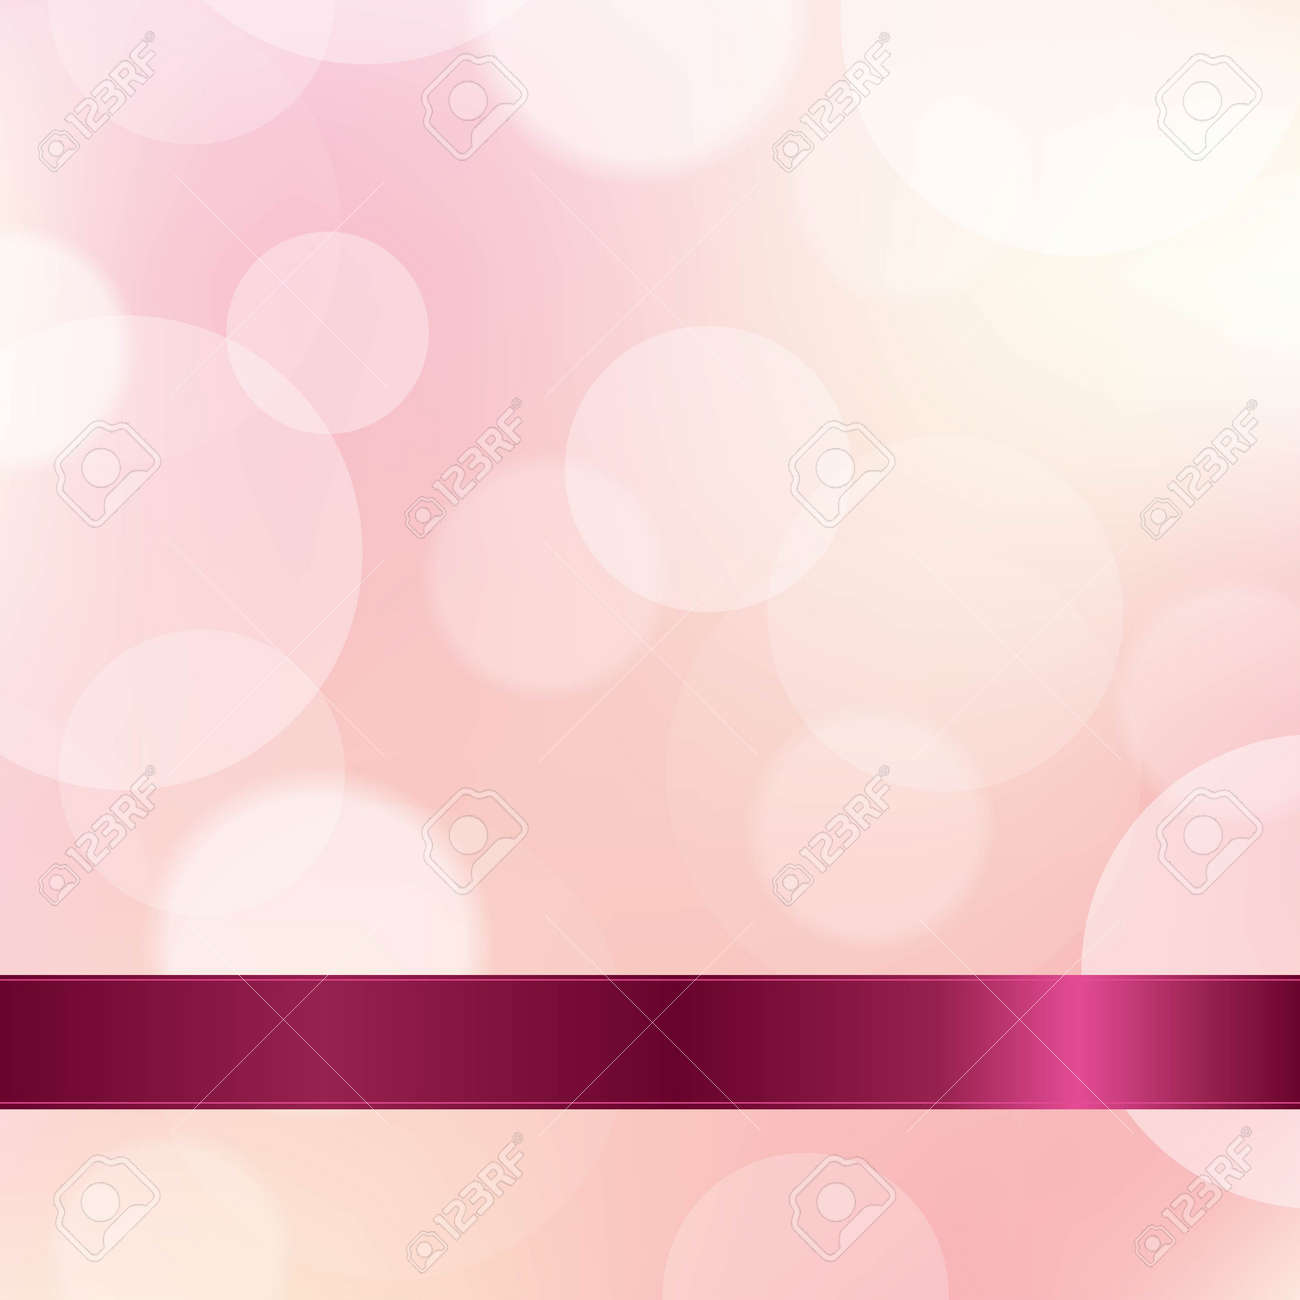 Pink Color Background With Ribbon, With Gradient Mesh, Vector Illustration - 23660380